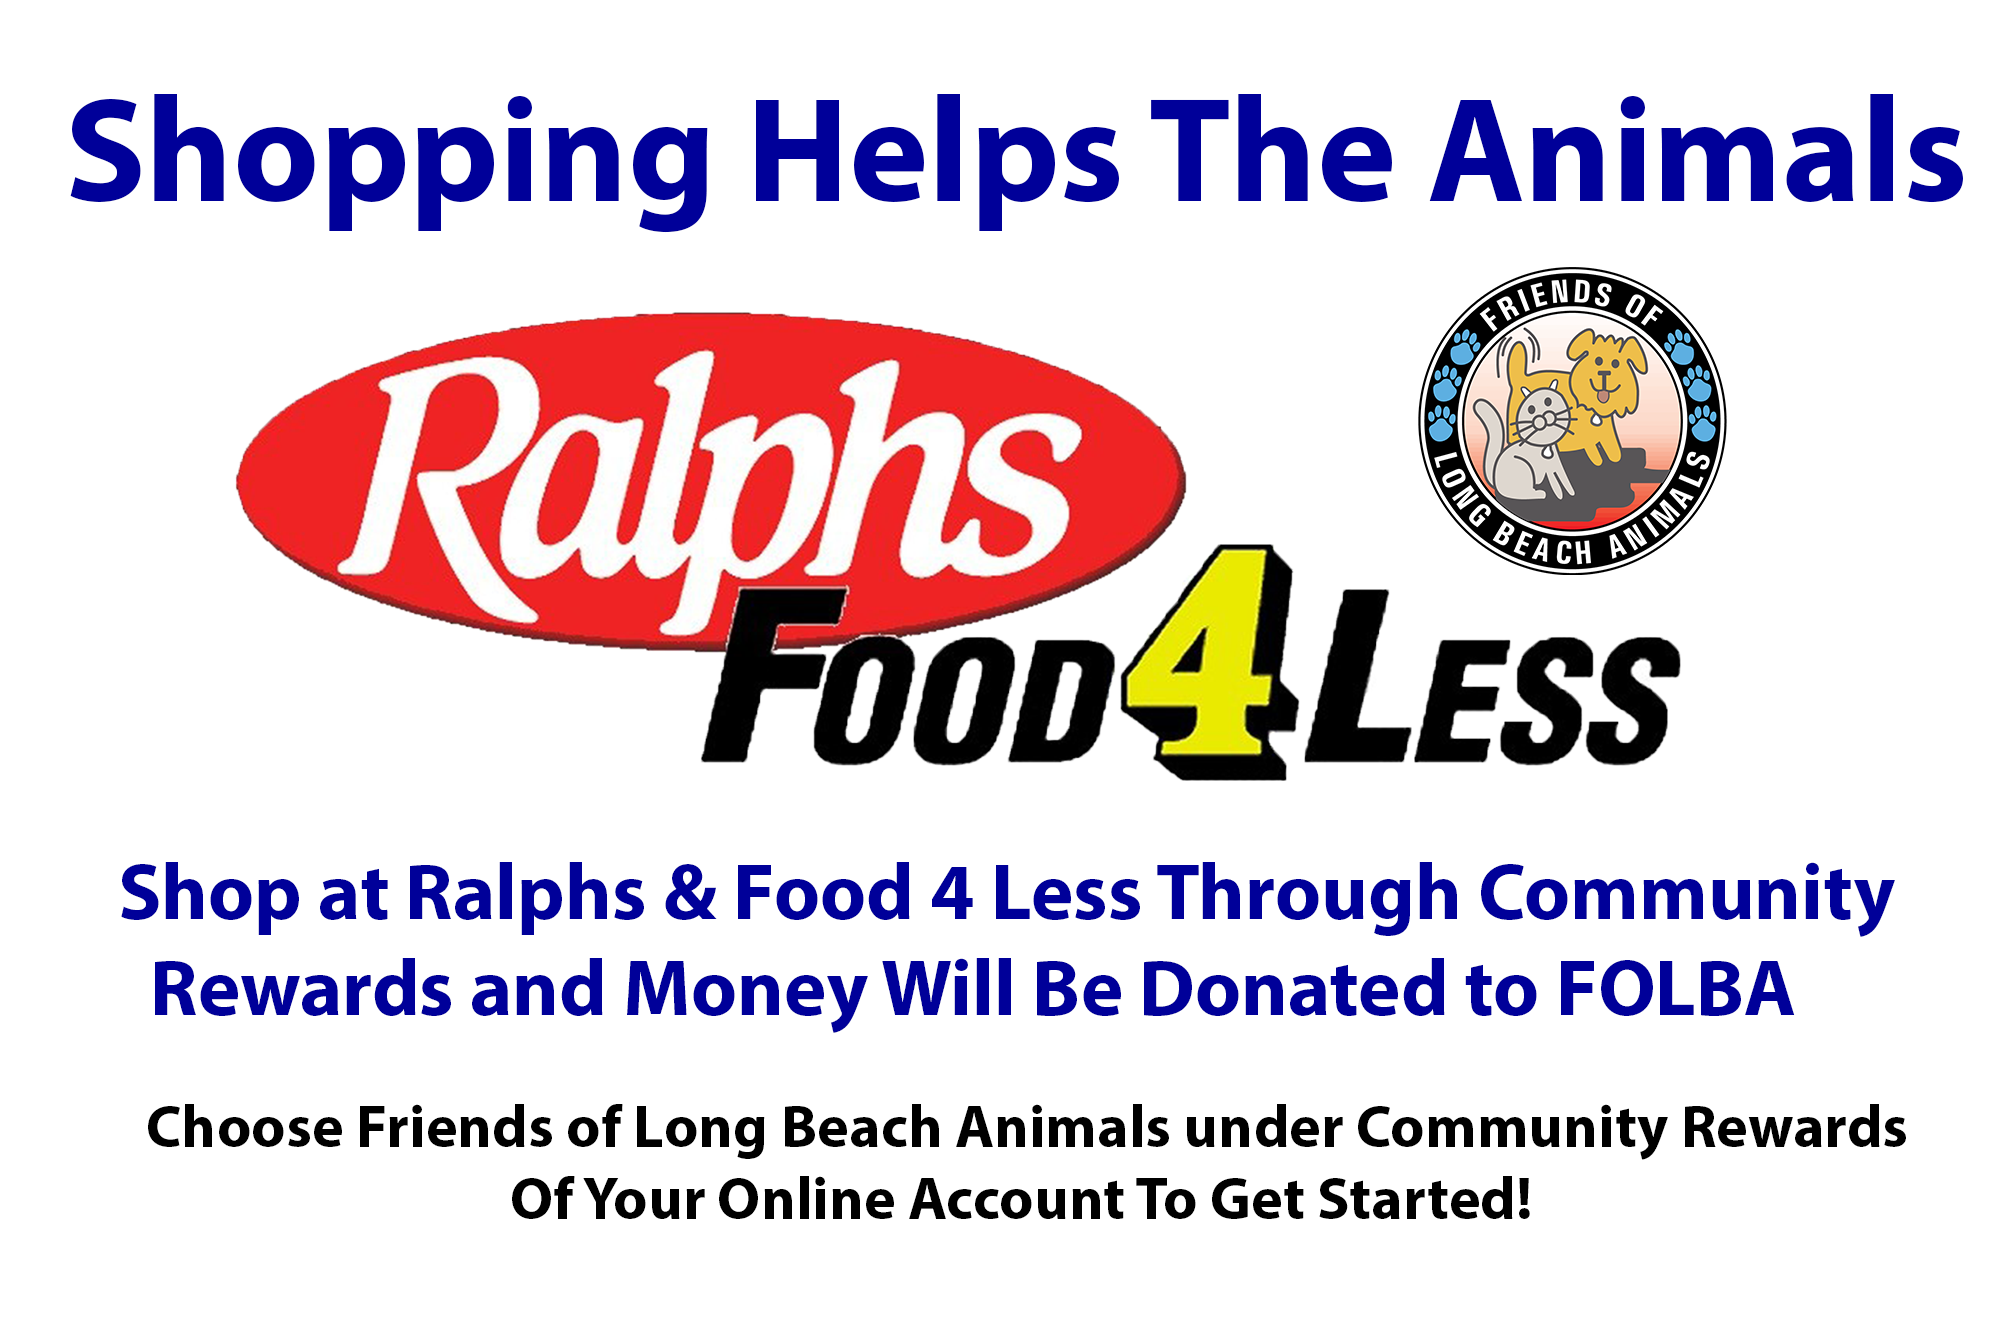 Donate to FOLBA through Ralphs & Food4Less